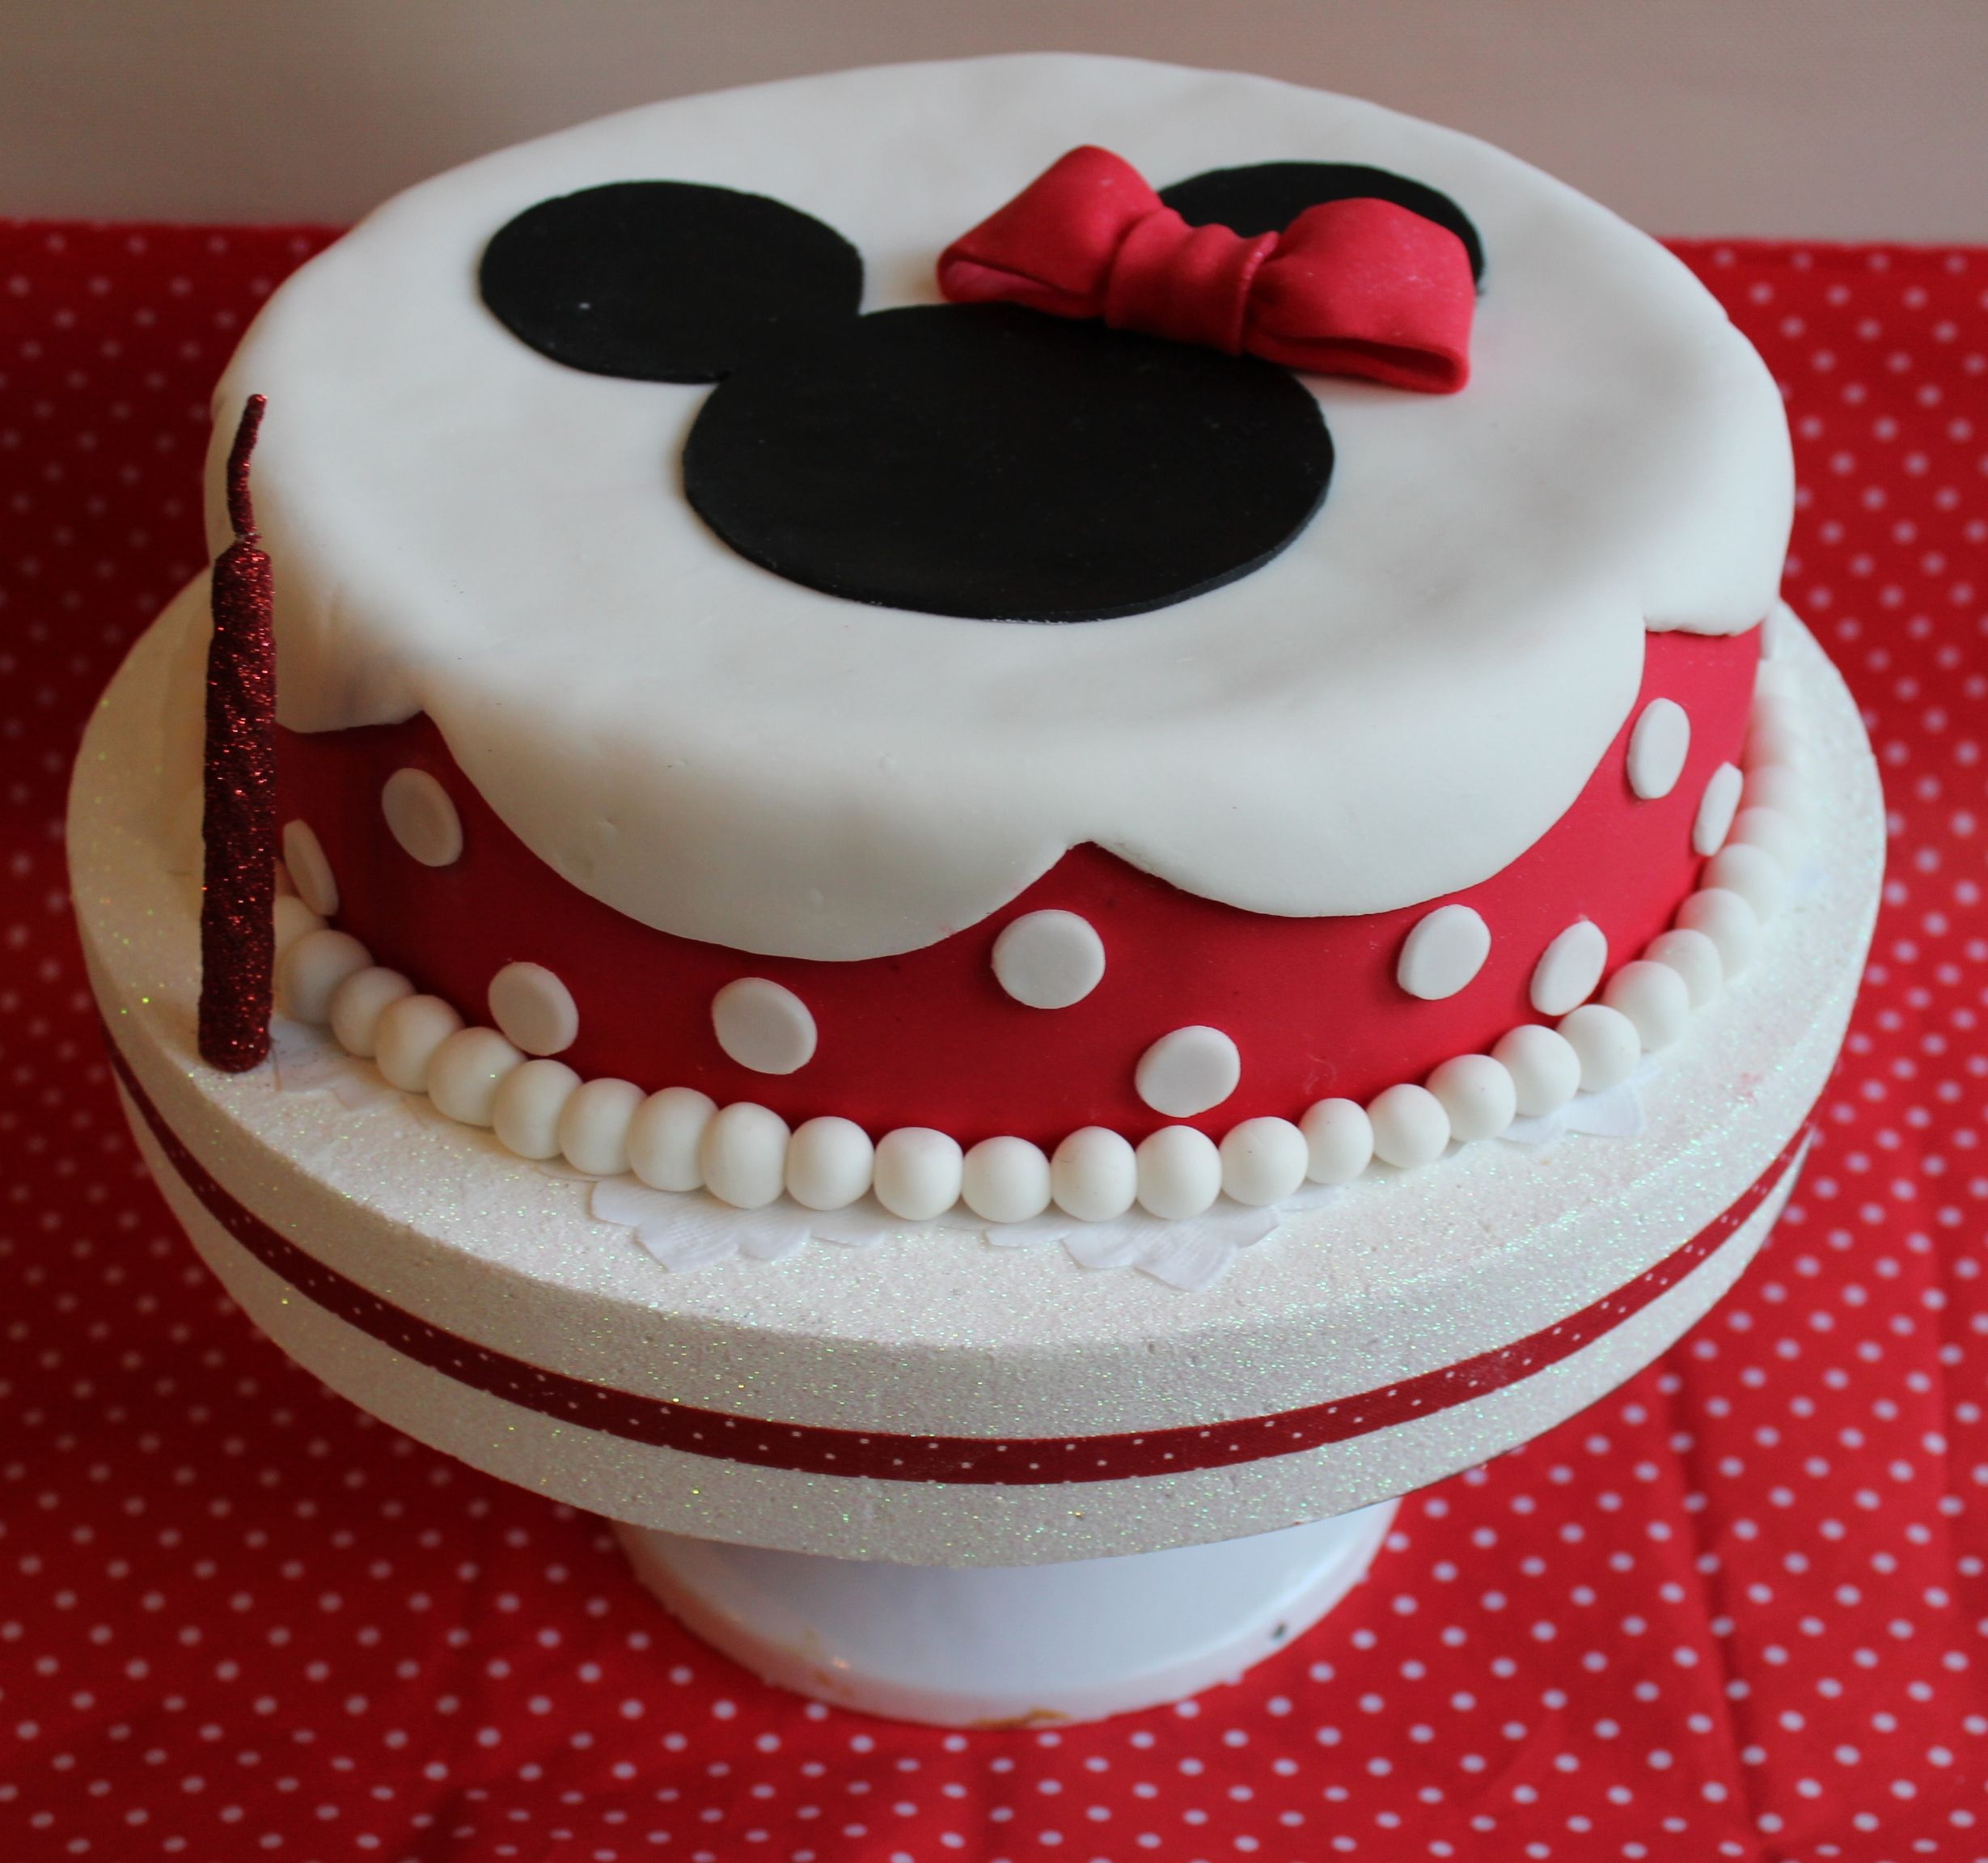 Gateau minnie gateau minnie pinterest gateau minnie gateau anniversaire et gateau fete - Gateau mickey facile ...